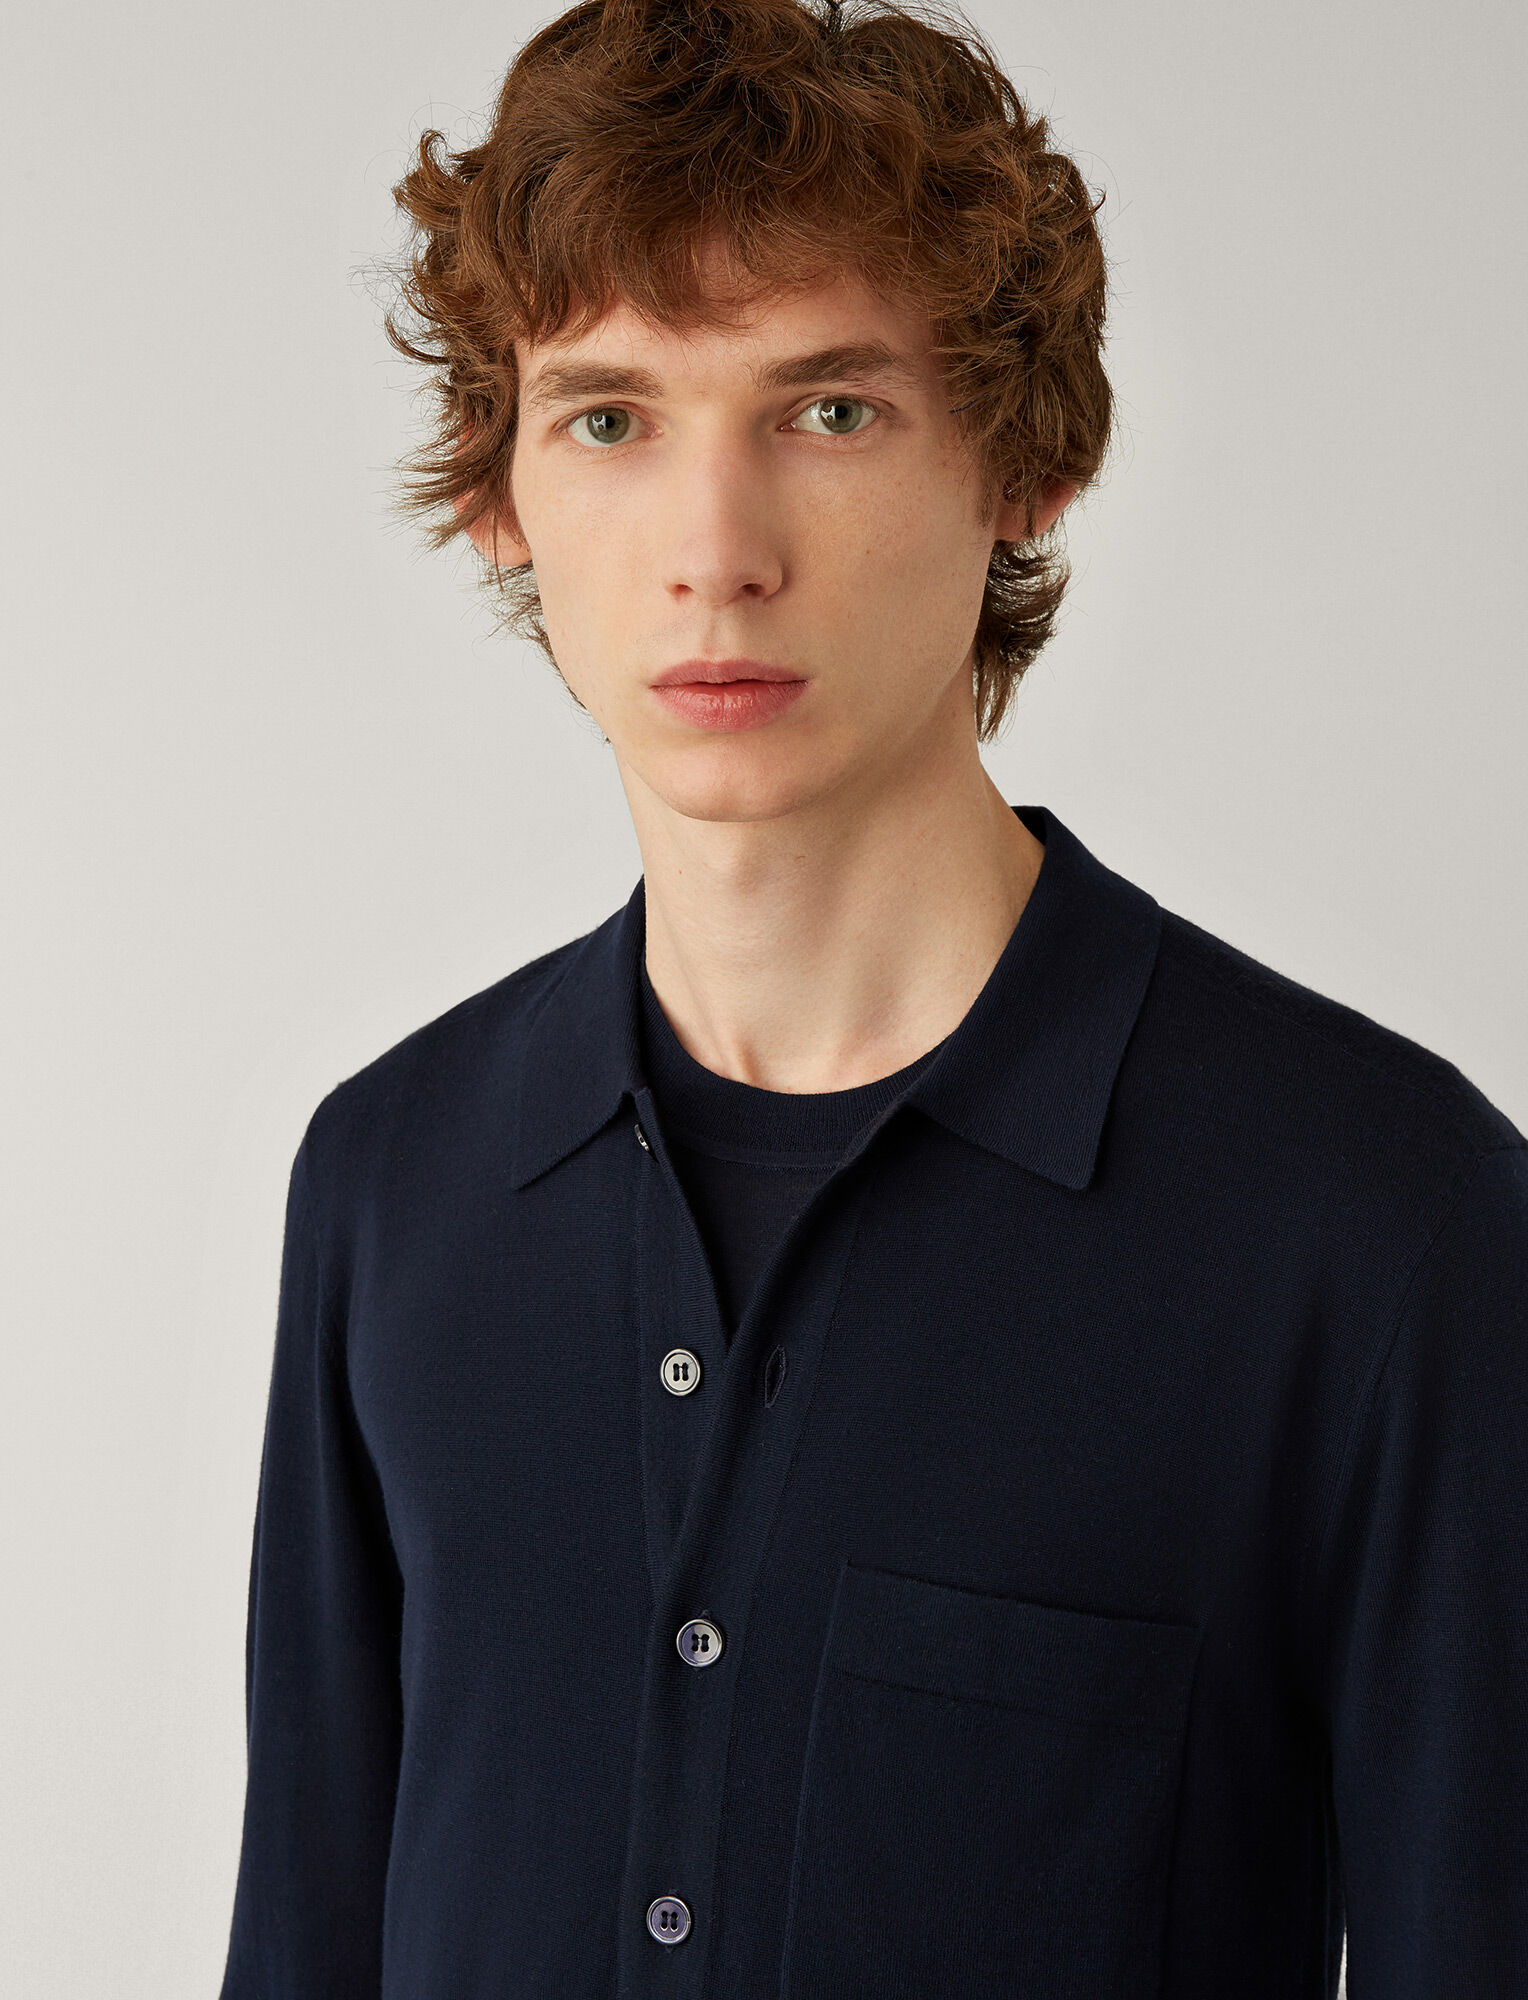 Joseph, Shirt Light Merinos Knit, in NAVY